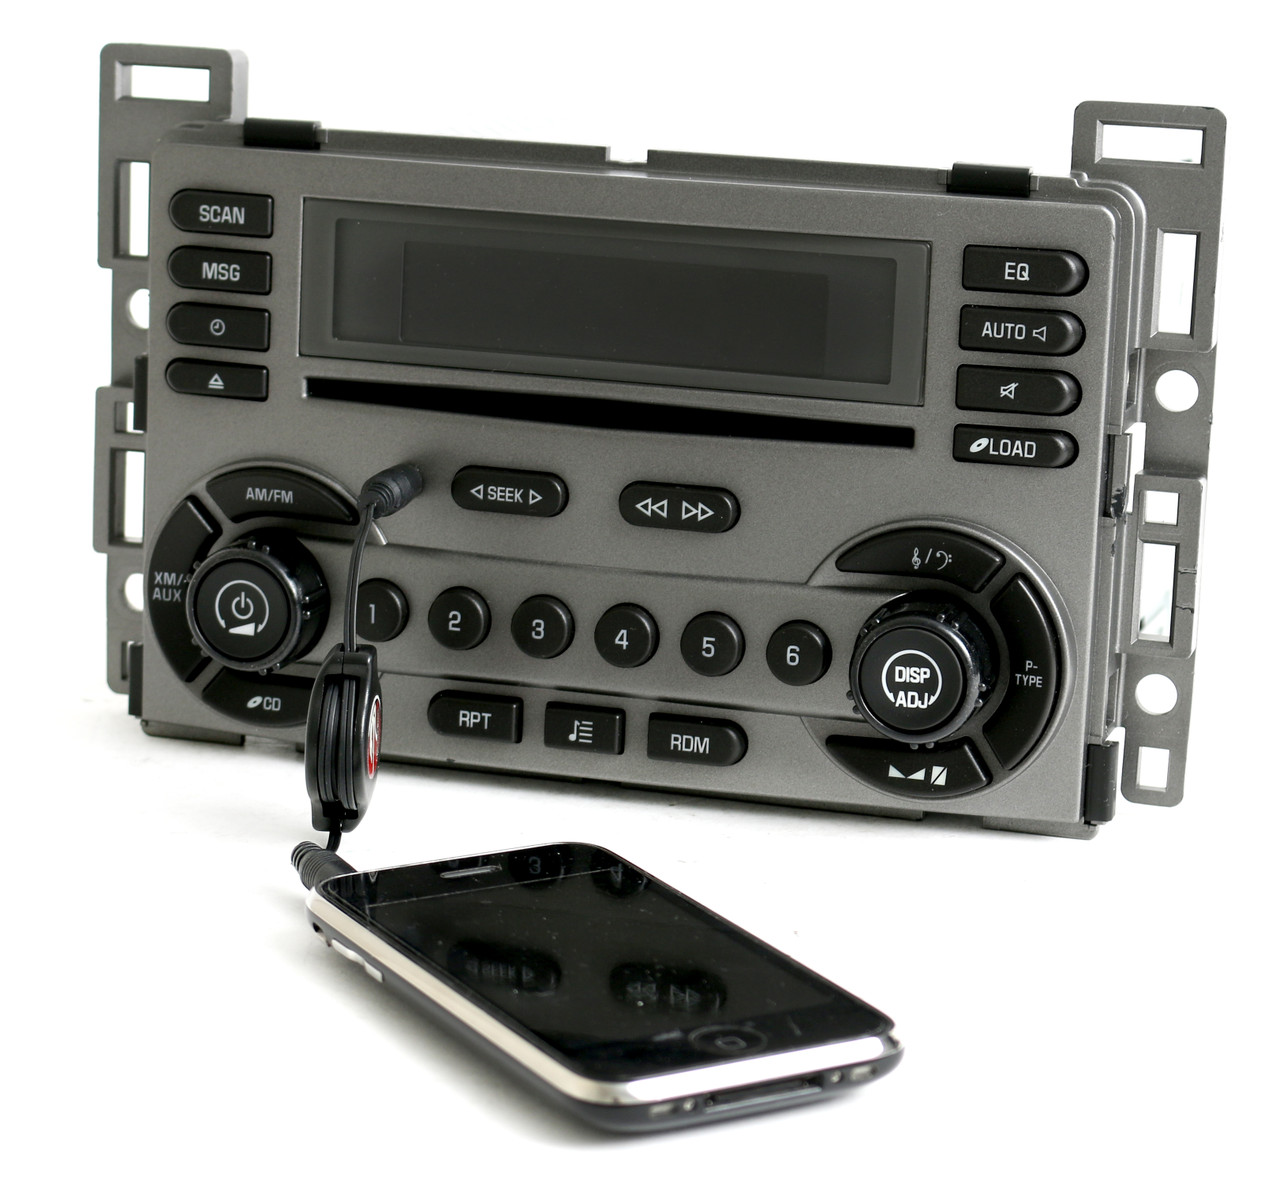 Does 6 disc cd changer stereo in 2005 Equinox   CarGurus